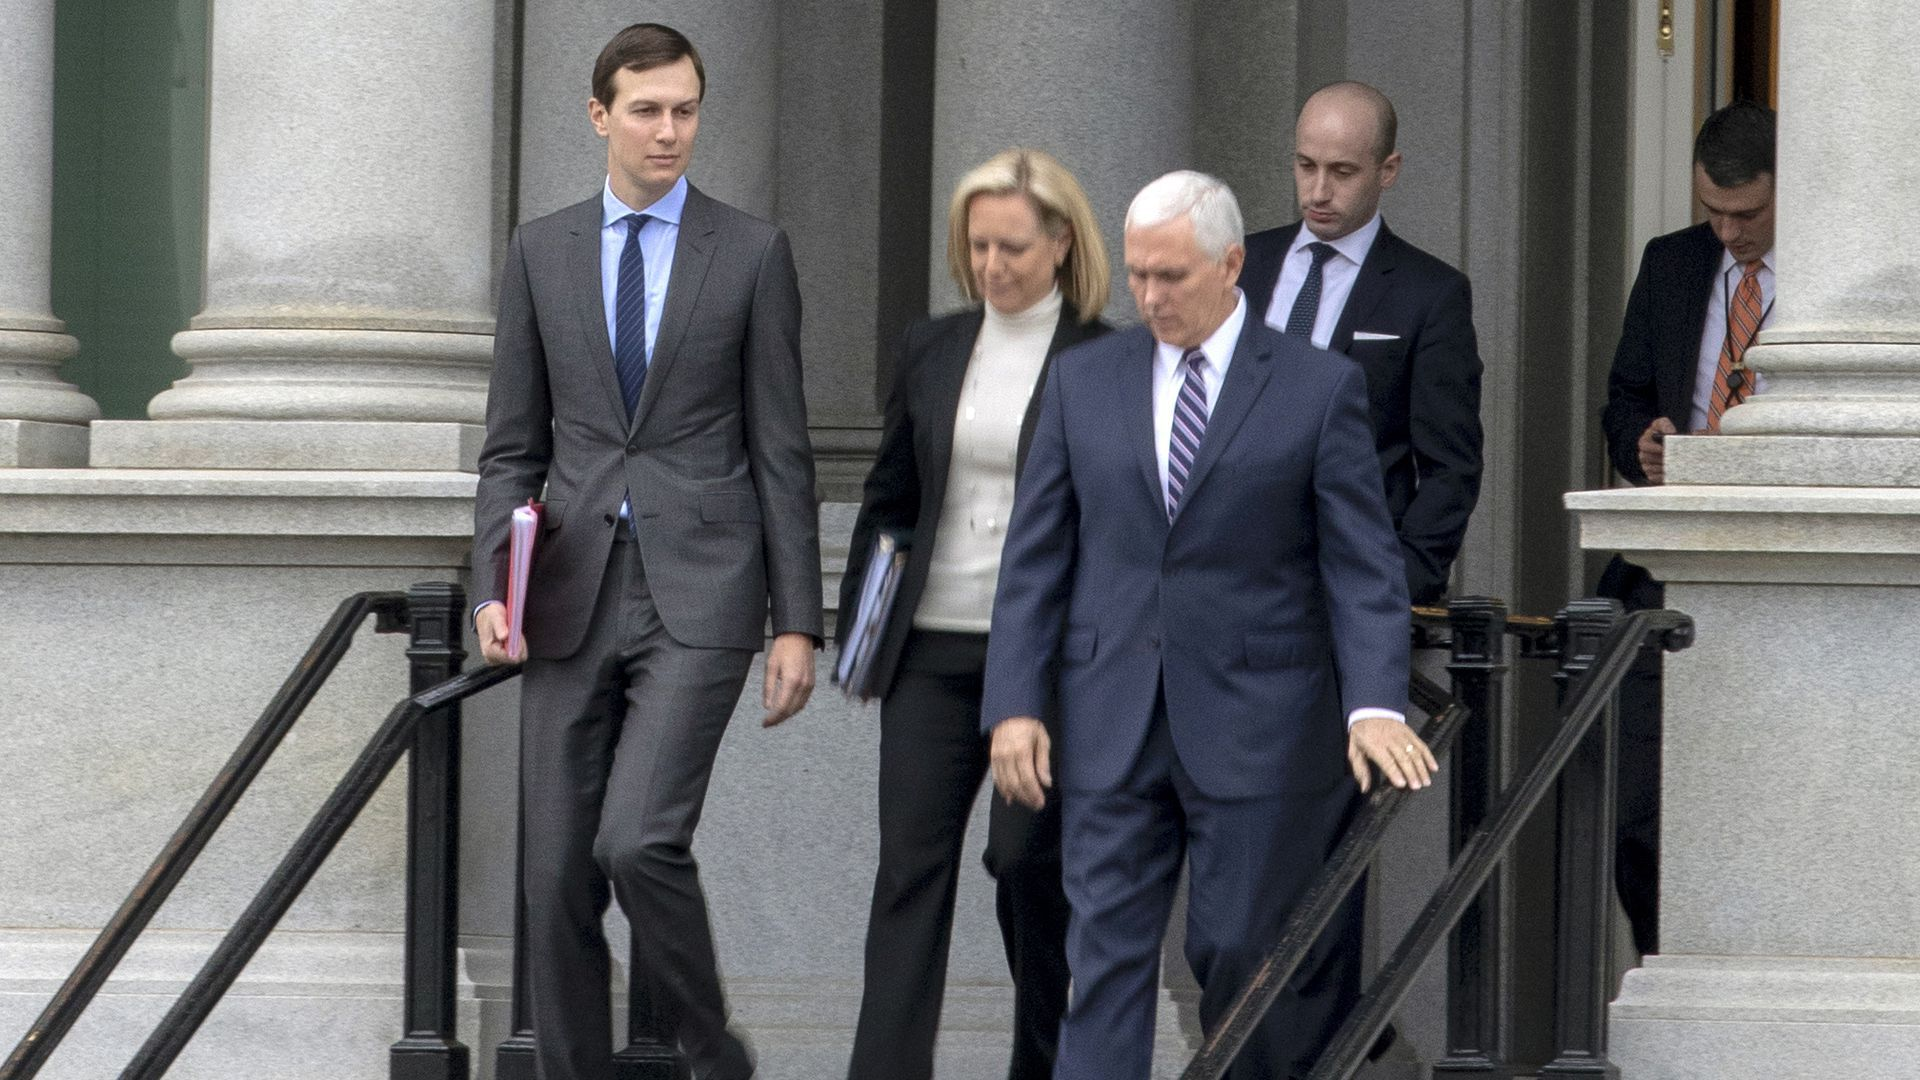 Jared Kushner walks down stairs followed by Mike Pence, Kirstjen Nielsen and Stephen Miller